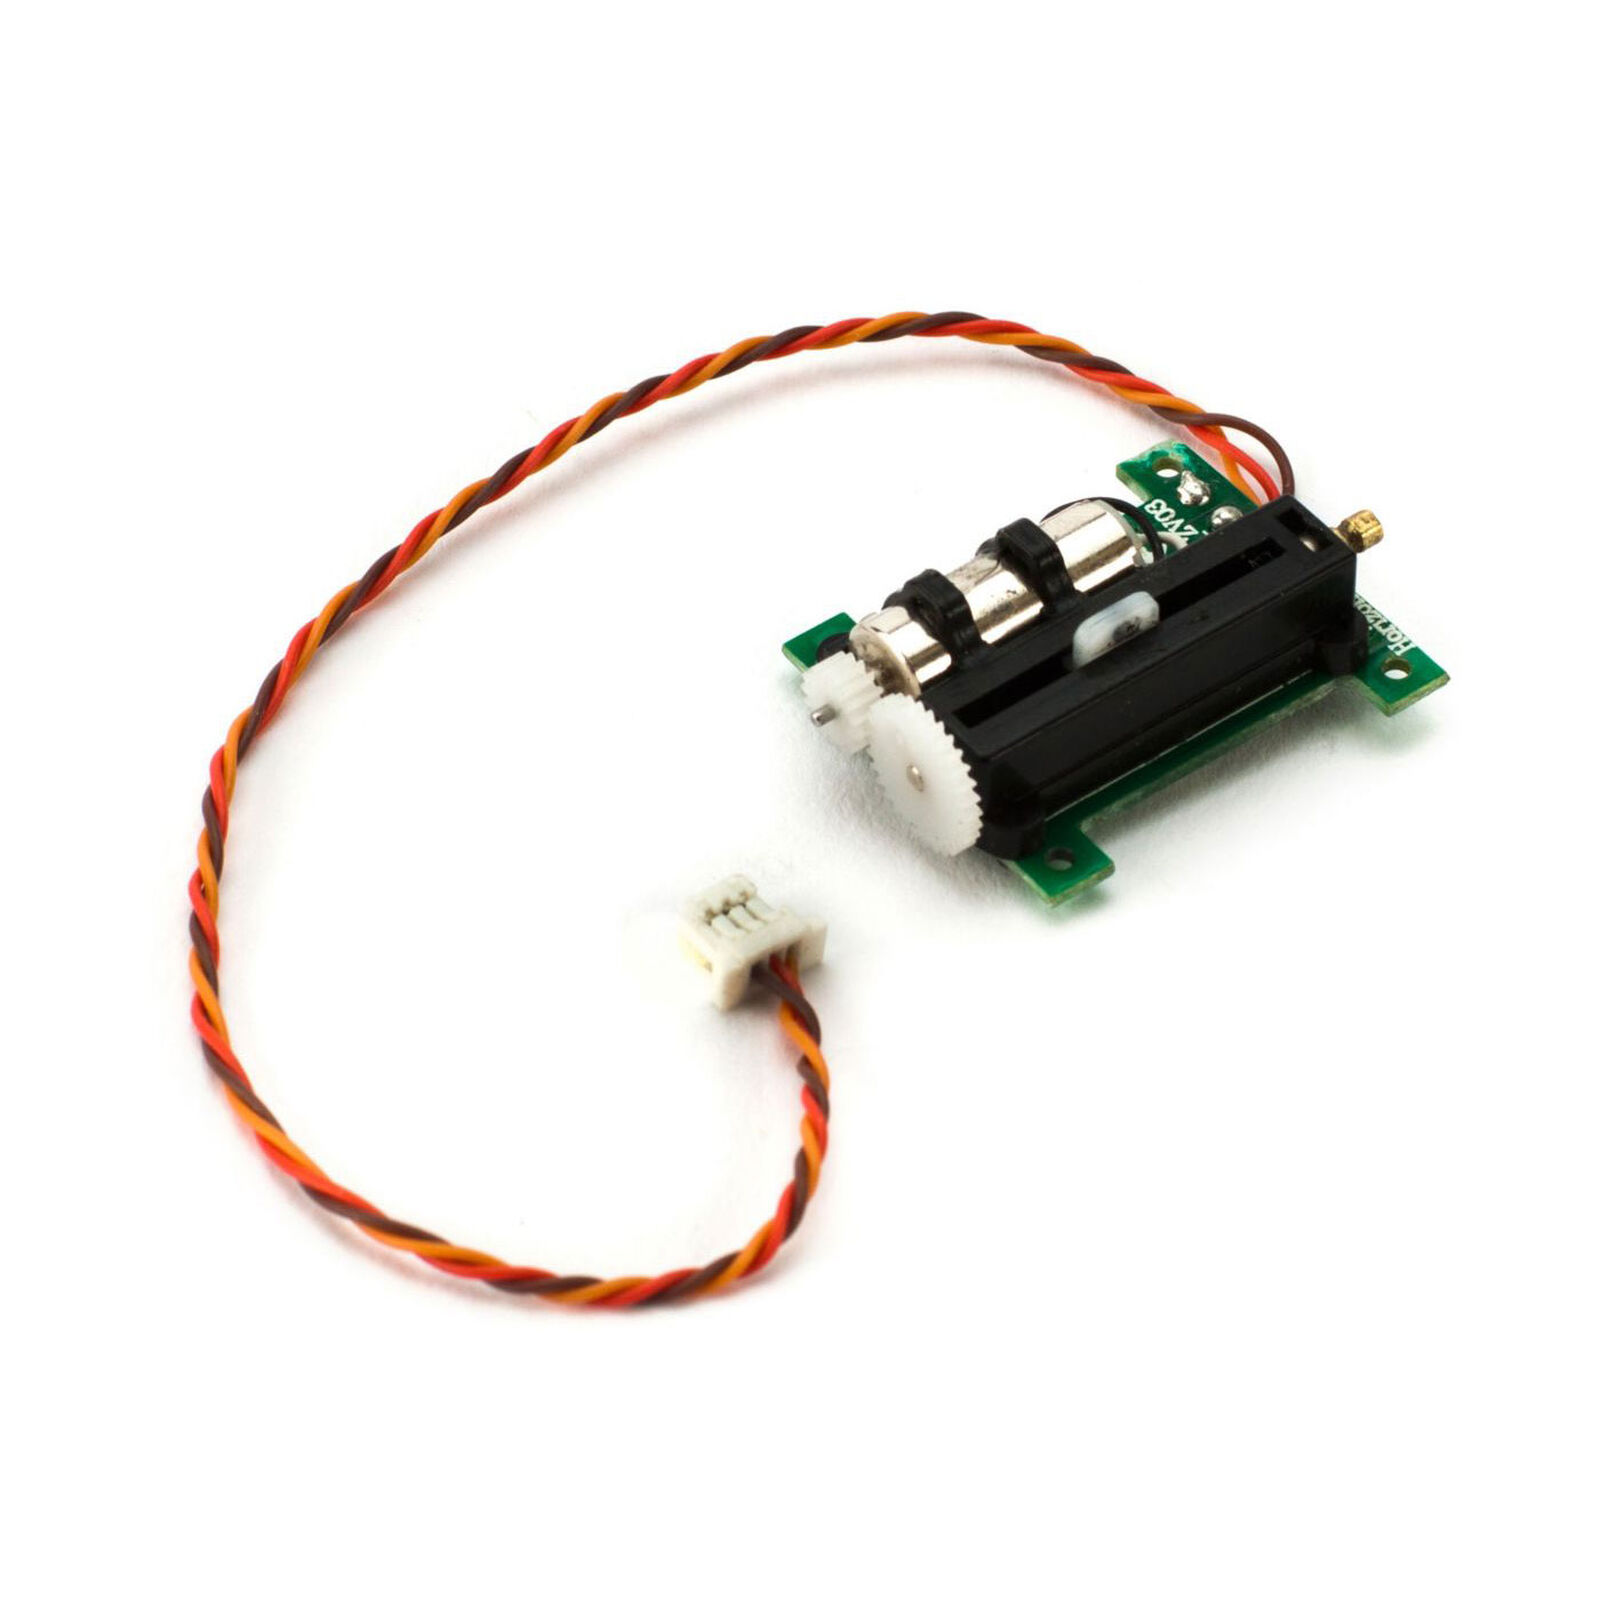 H2040T Analog 2.9g Performance Linear Heli Servo